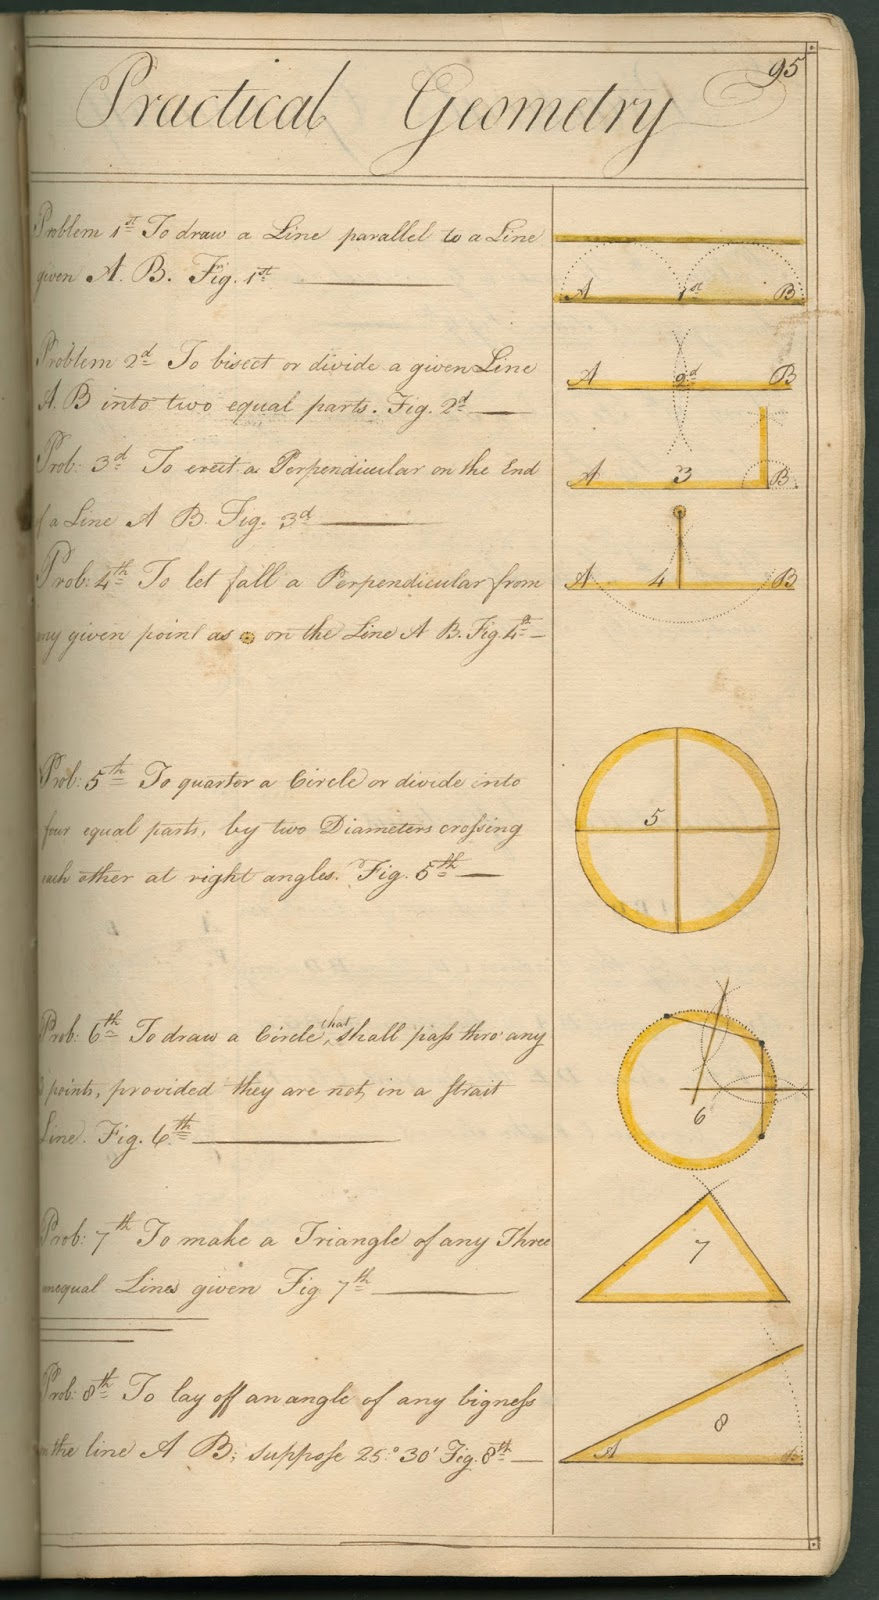 A handwritten page from a mathematical text, including a column of geometric figures.